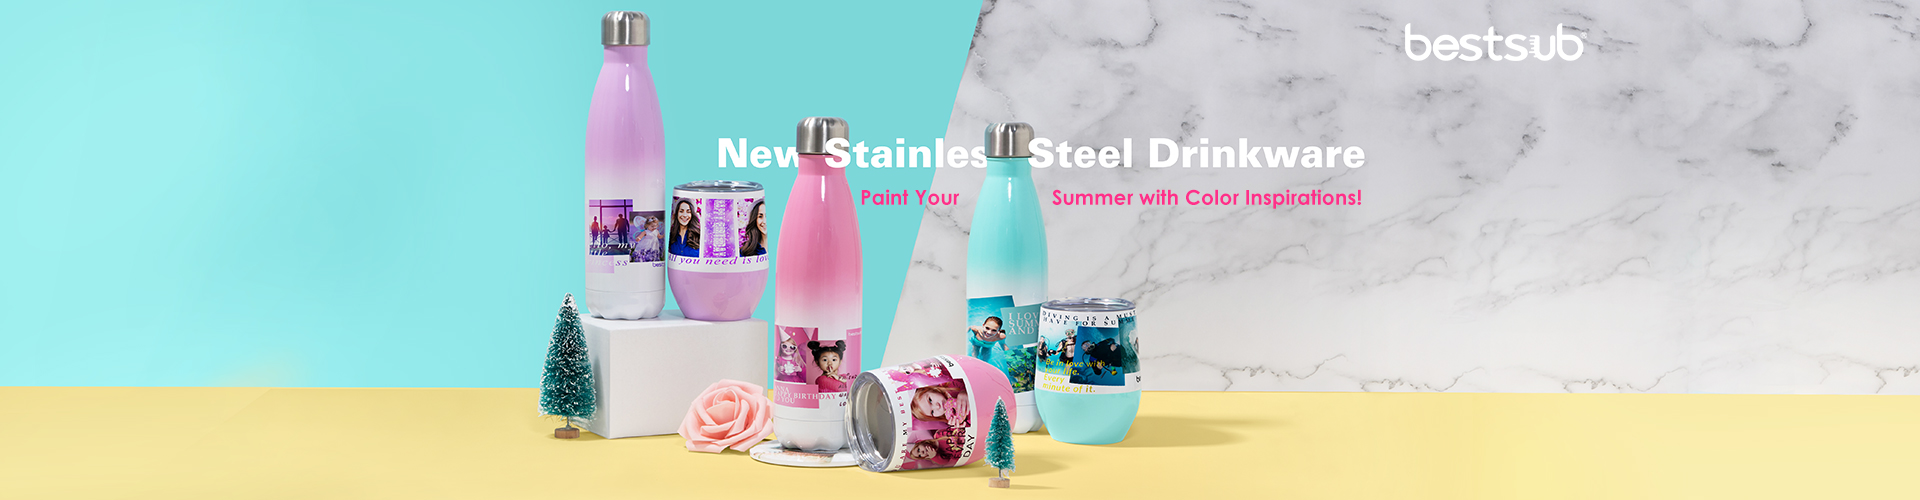 2019-7-12_New_Stainless_Steel_Drinkware_new_web